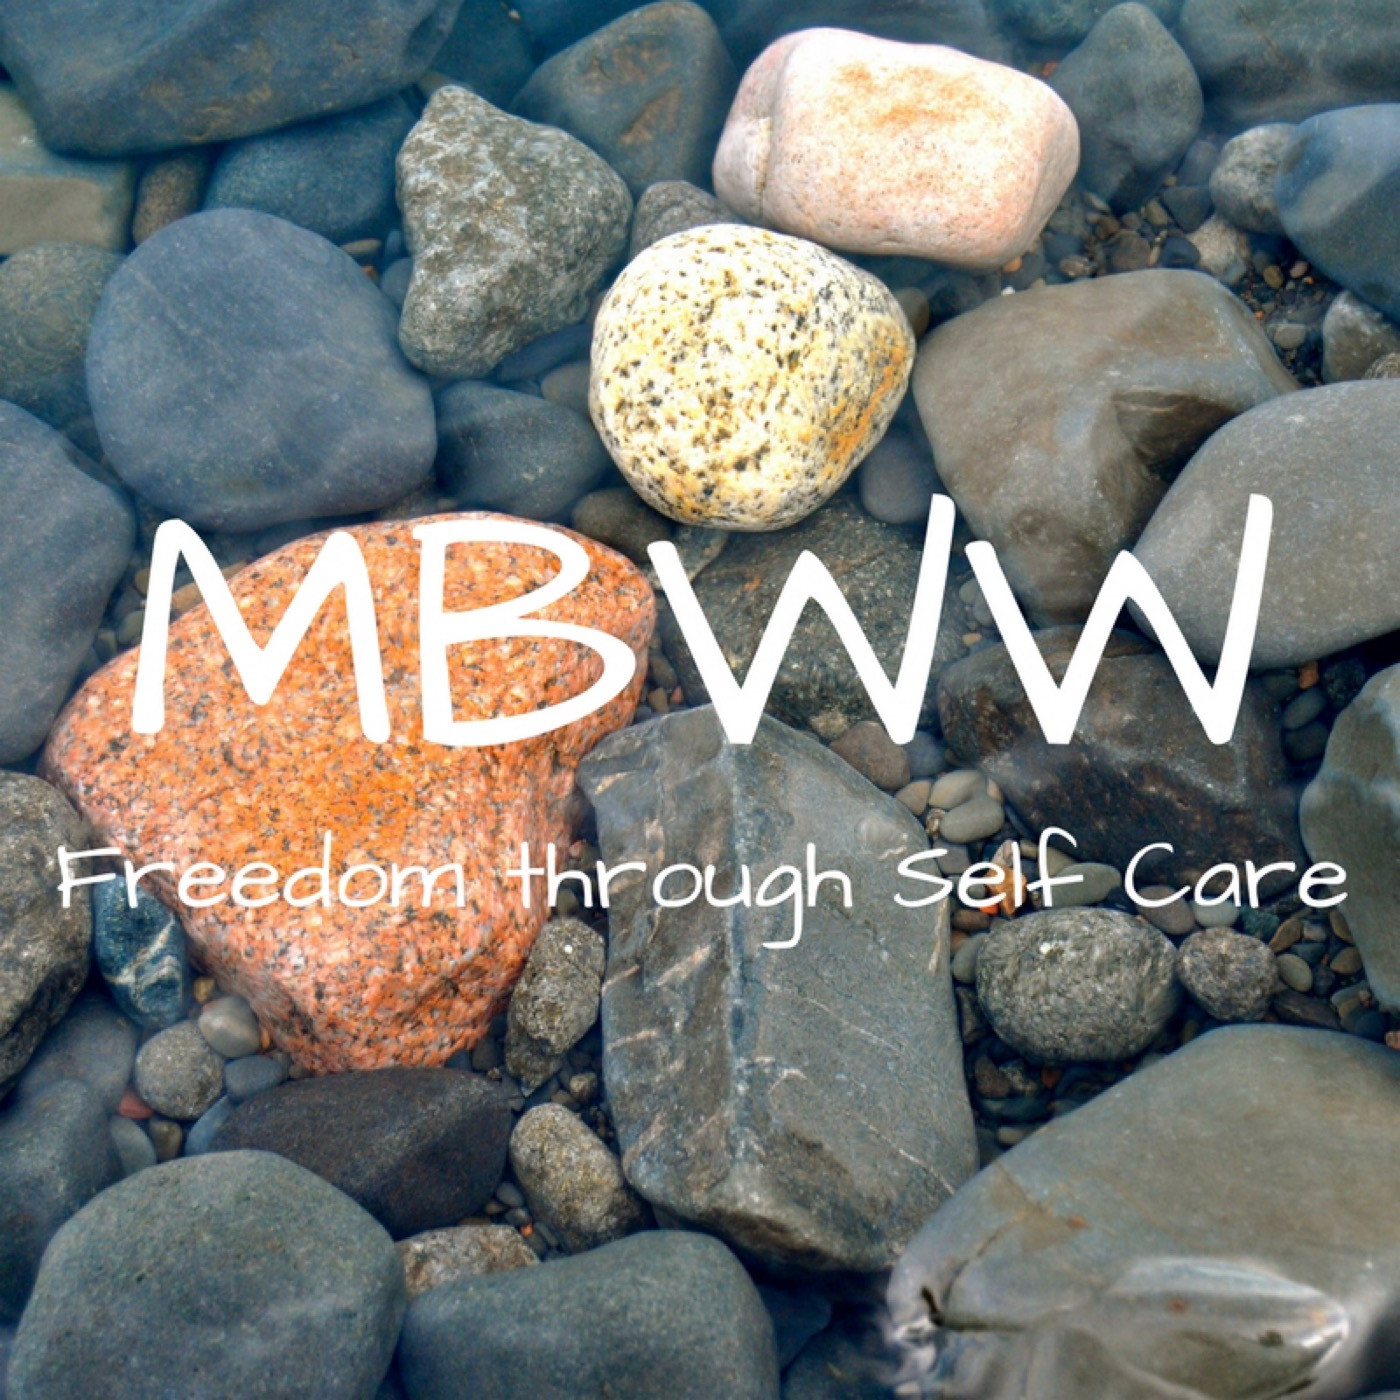 Freedom through Self Care